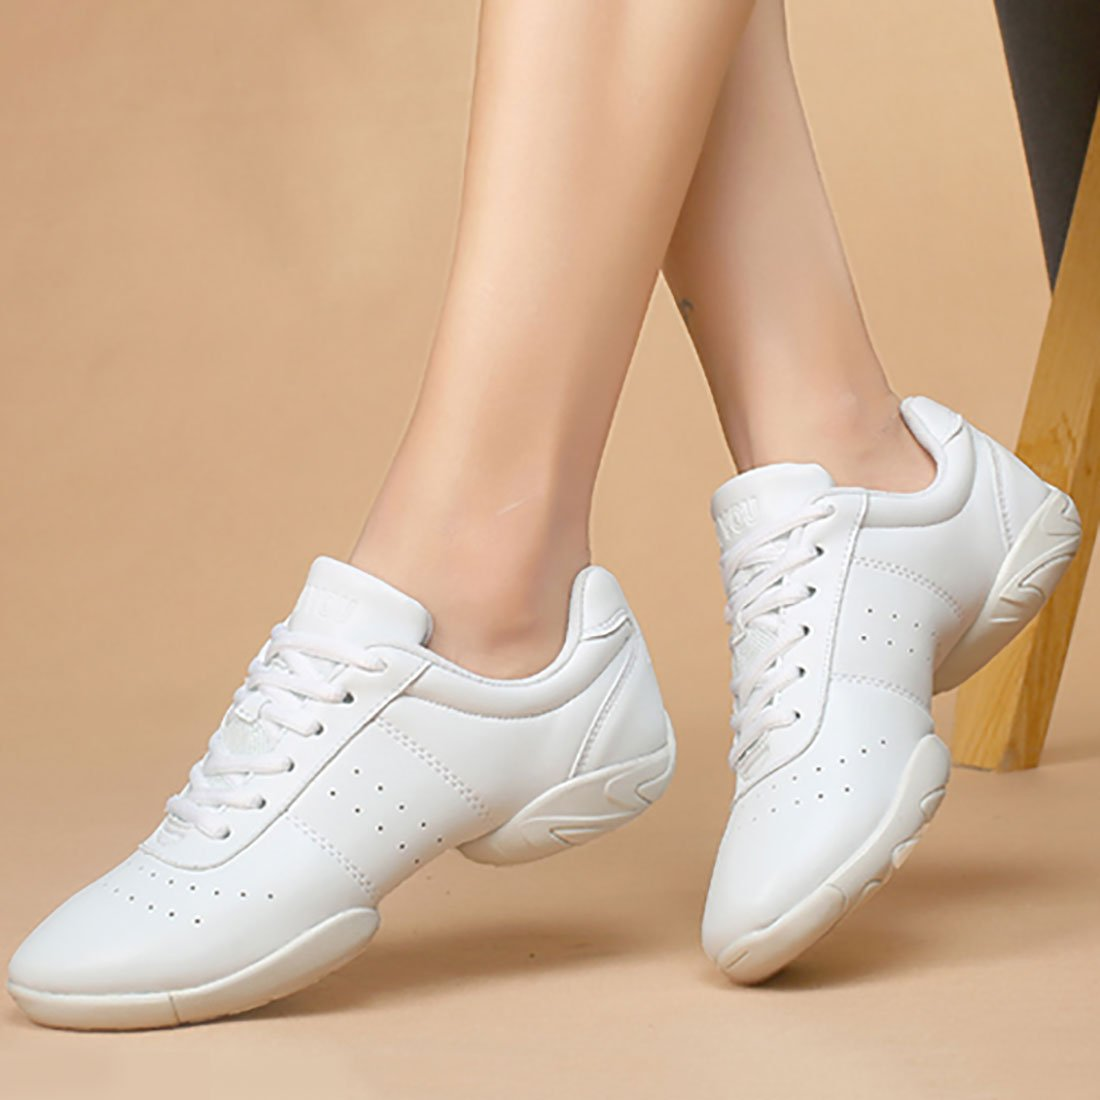 YIBLBOX Men and Womens Boost Modern Jazz Ballroom Performance Dance Sneakers Sports Shoes